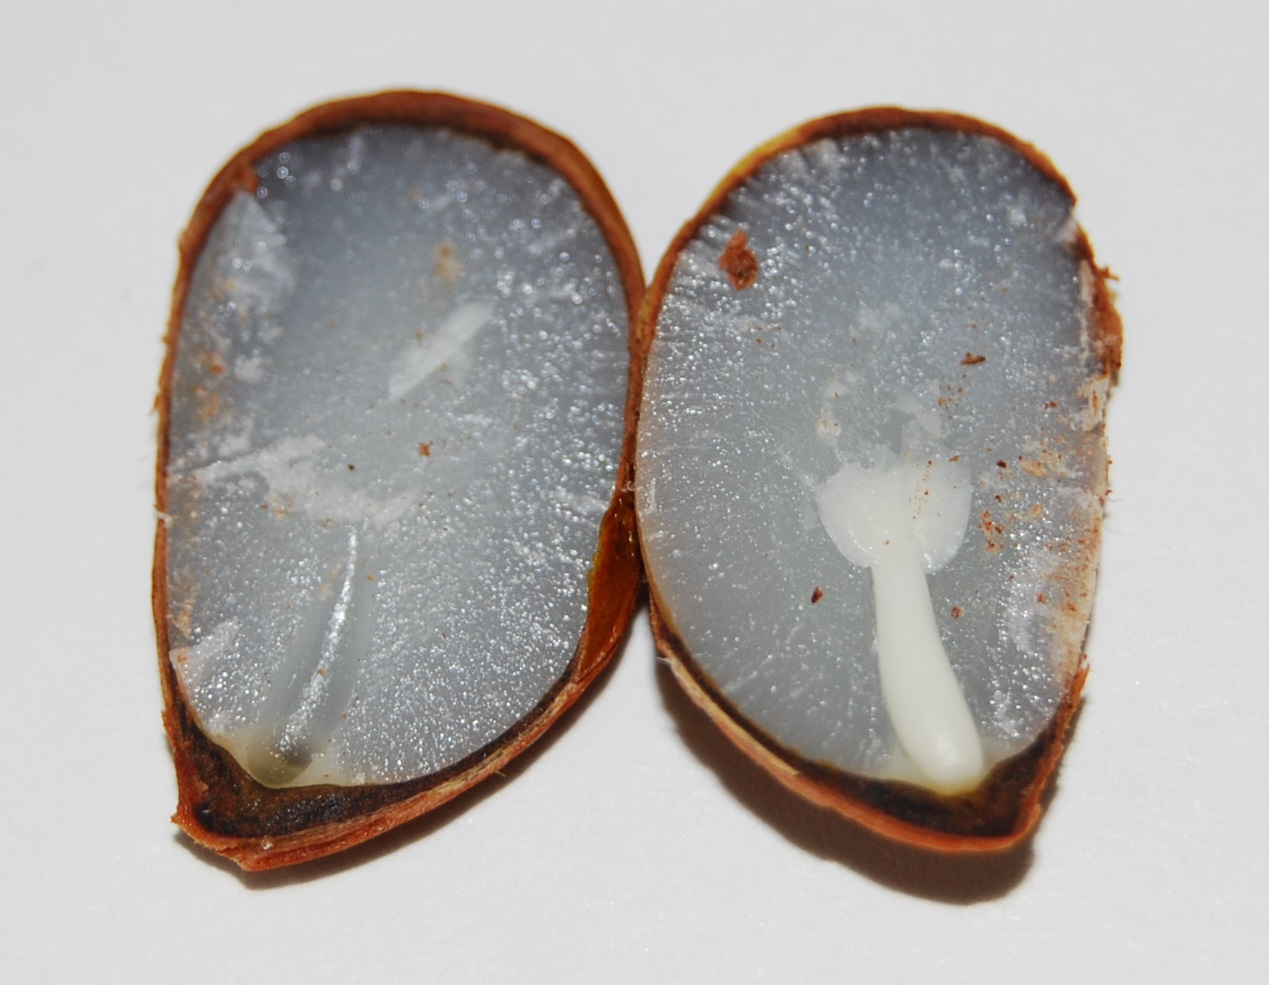 persimmon seed weather predicting